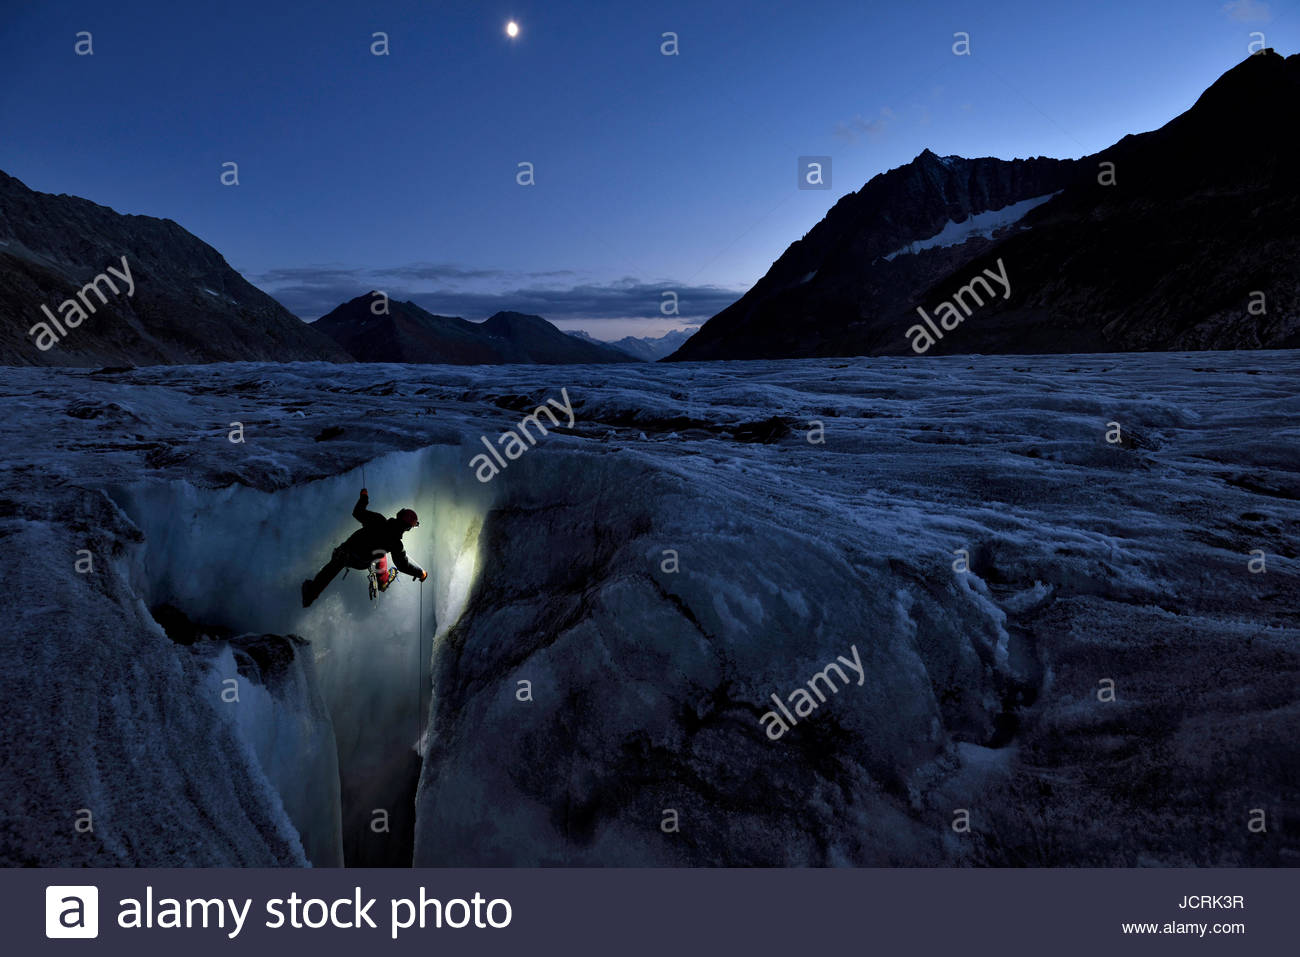 In the early evening light, an Italian cave explorer begins his descent down a moulin on the Aletschgletscher when - Stock Image